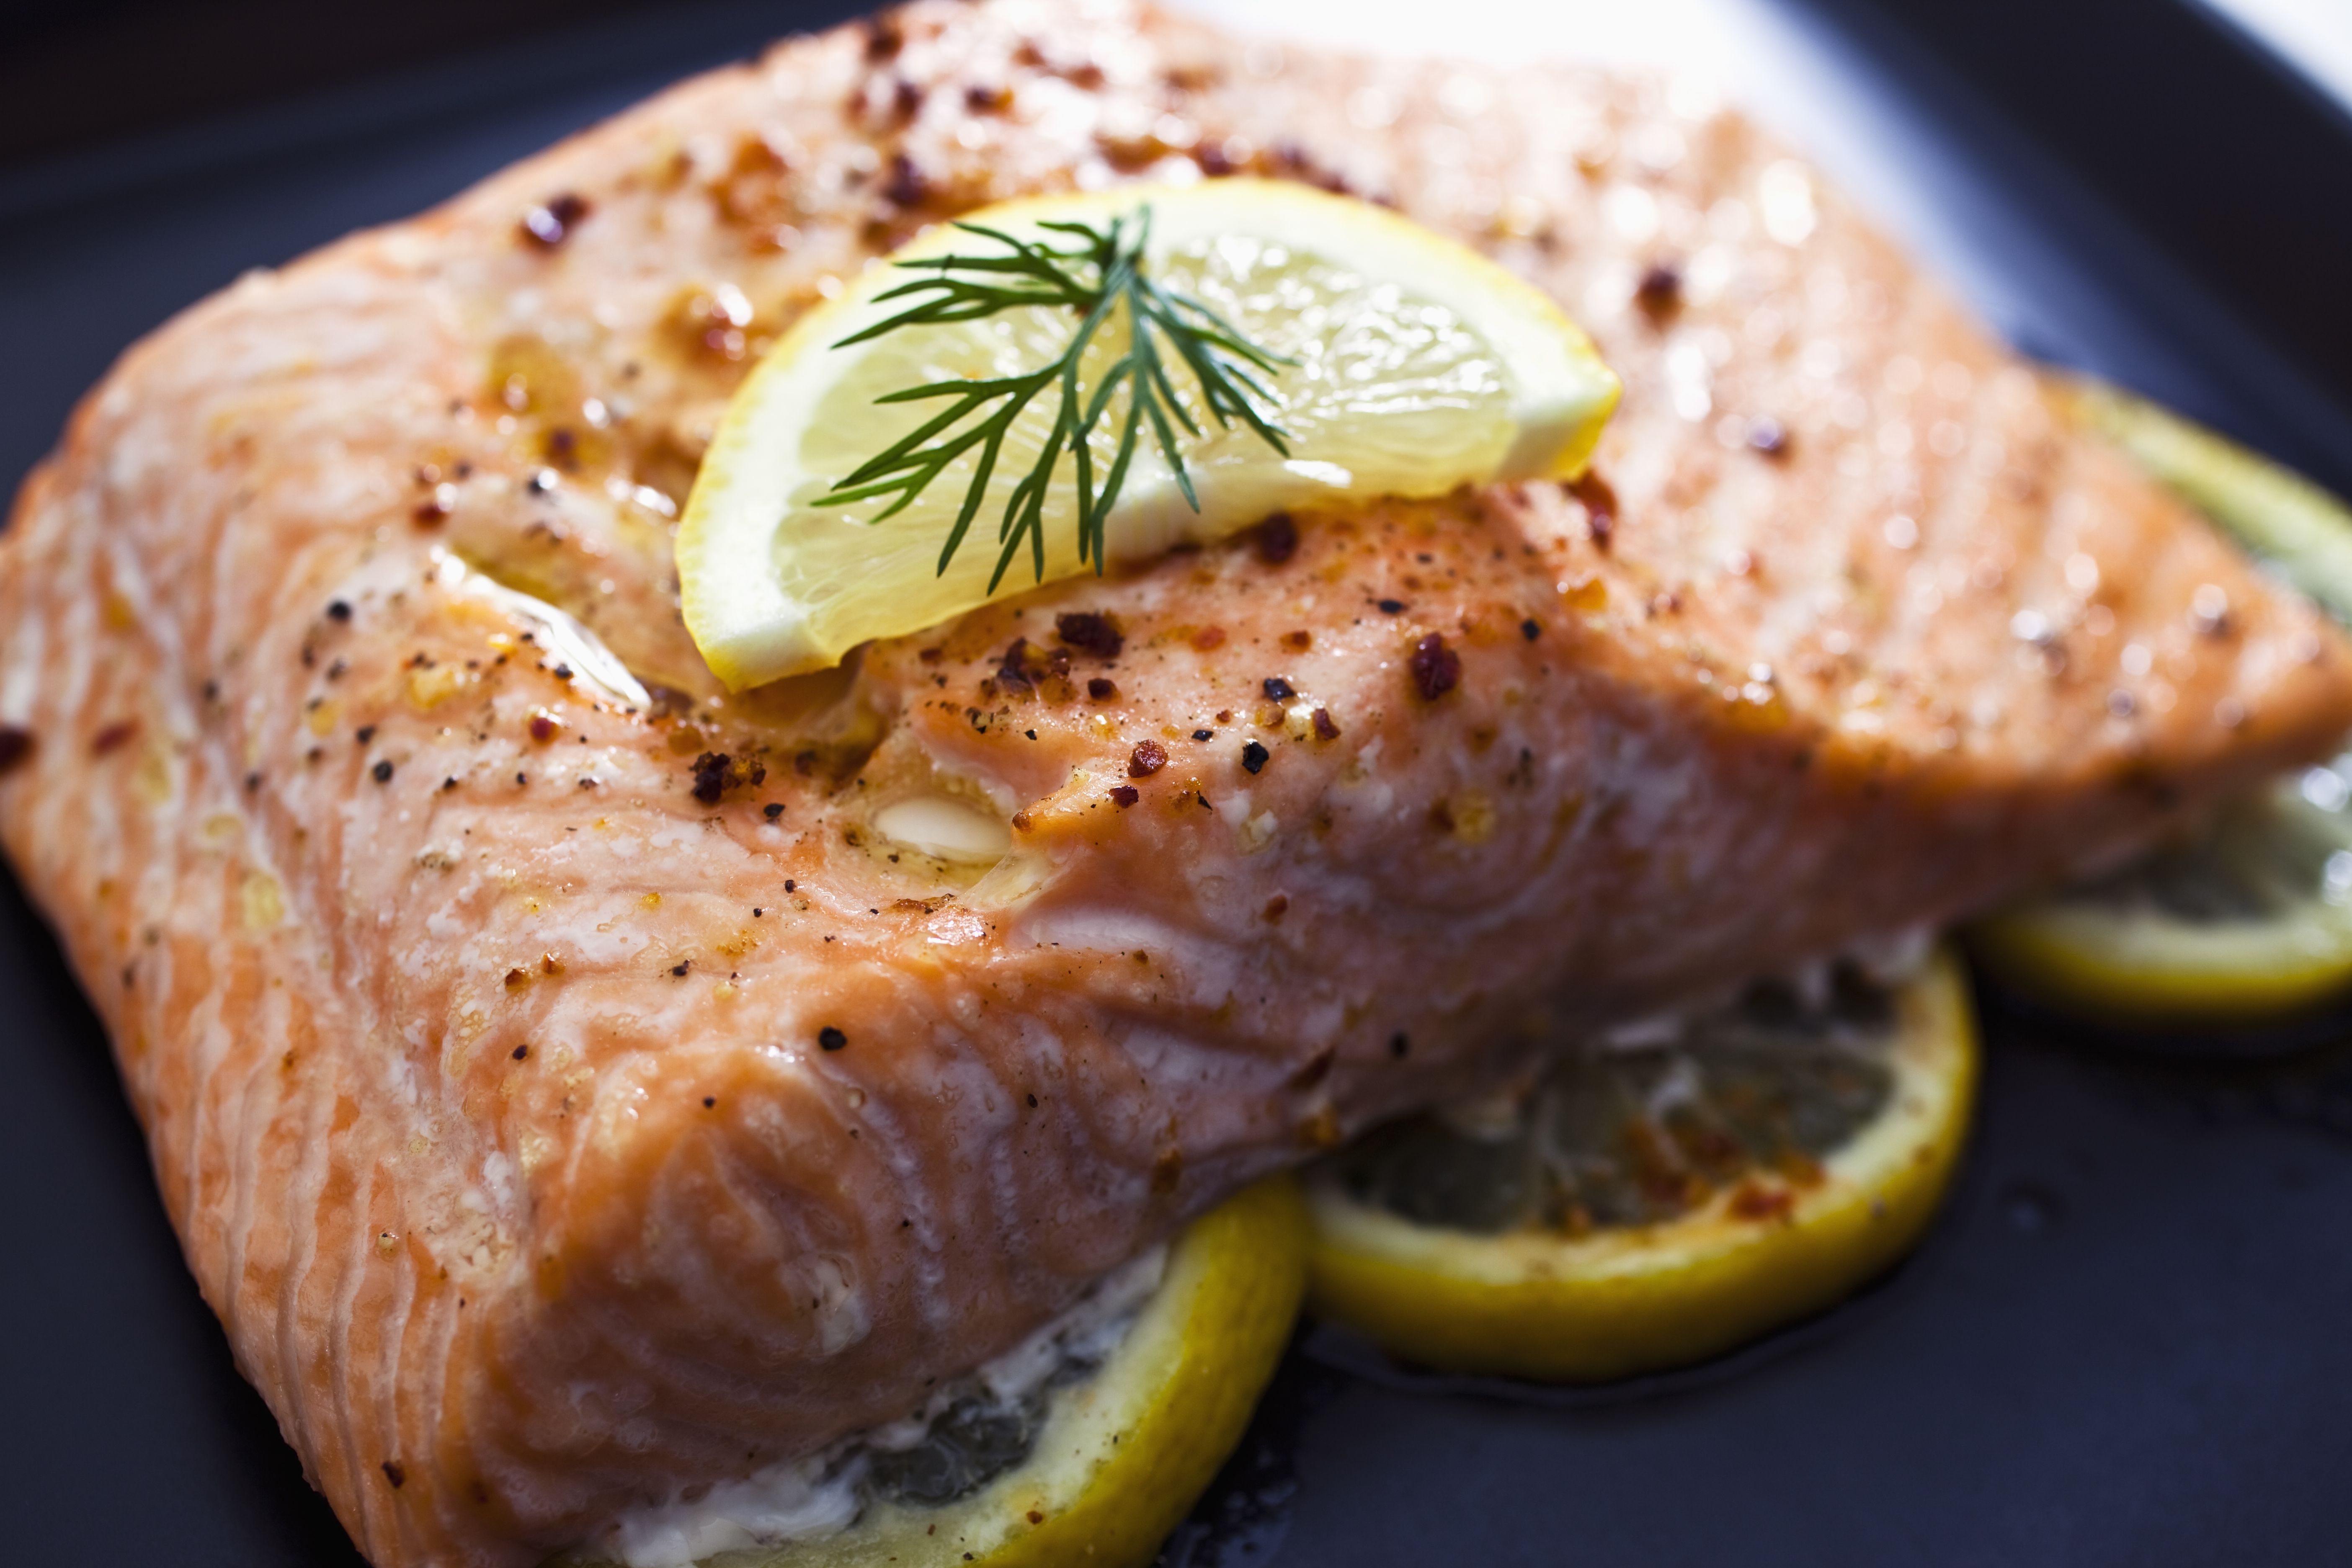 baked-salmon-with-a-slice-of-lemon-and-some-dill-157505475-5835f7cc3df78c6f6ad3d072.jpg